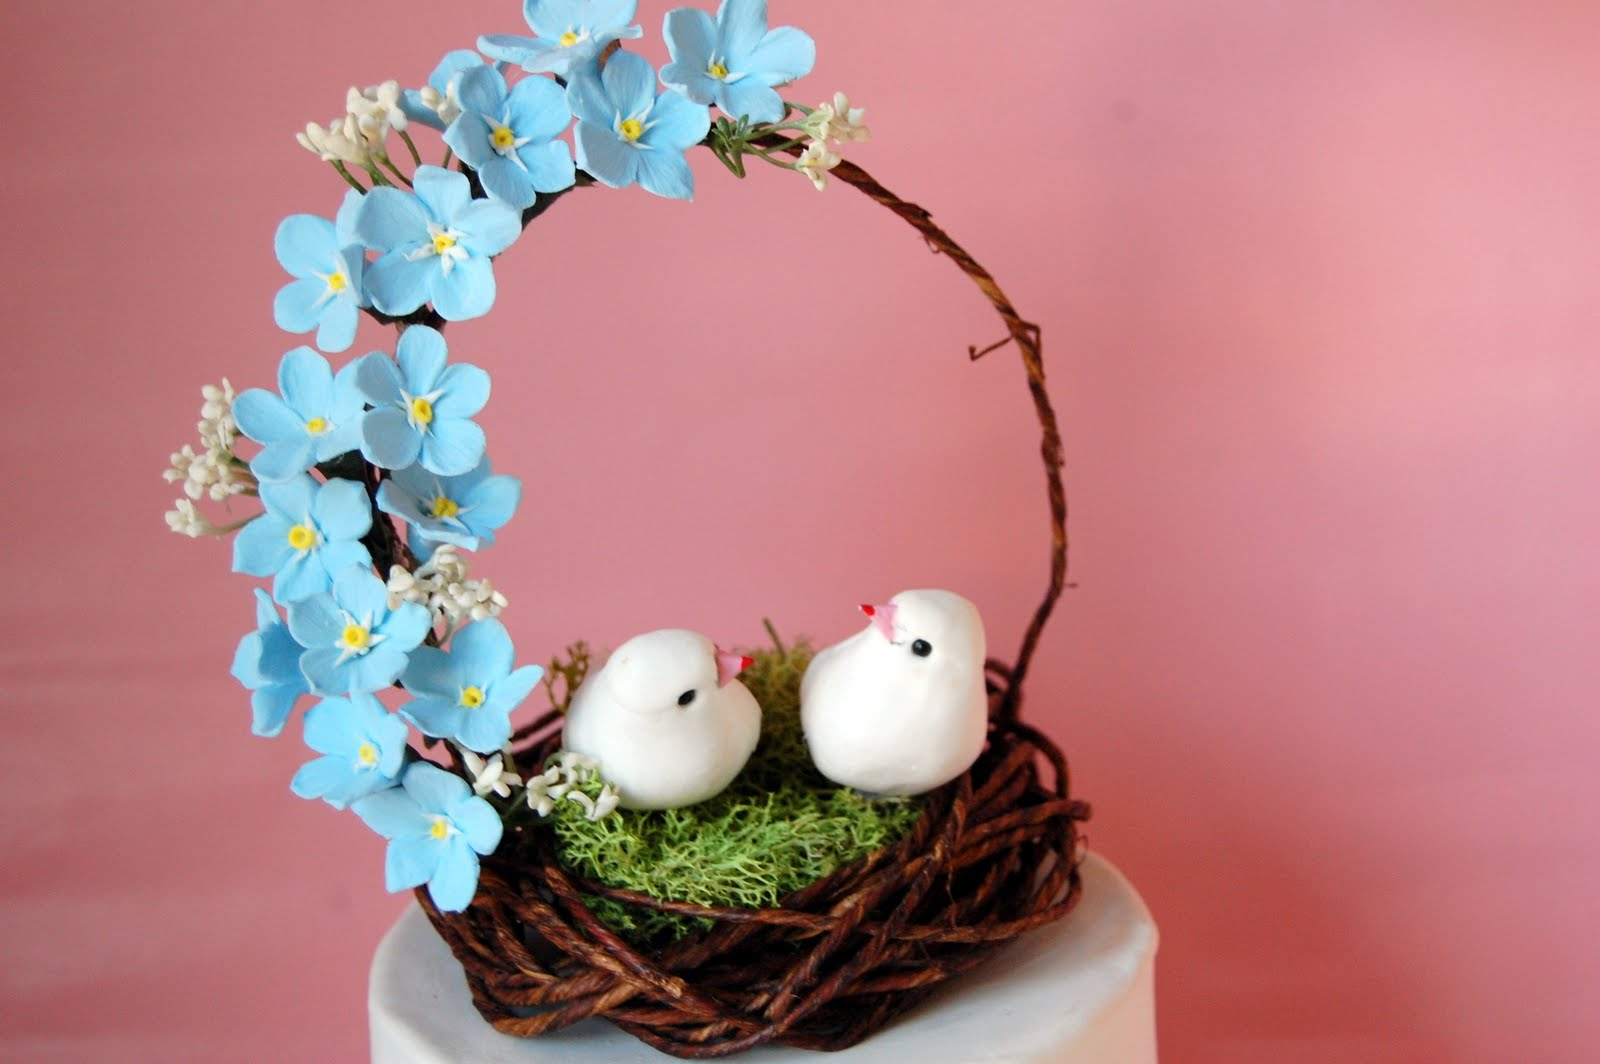 Handmade Forget me nots wedding cake topper bird nest in blue ...